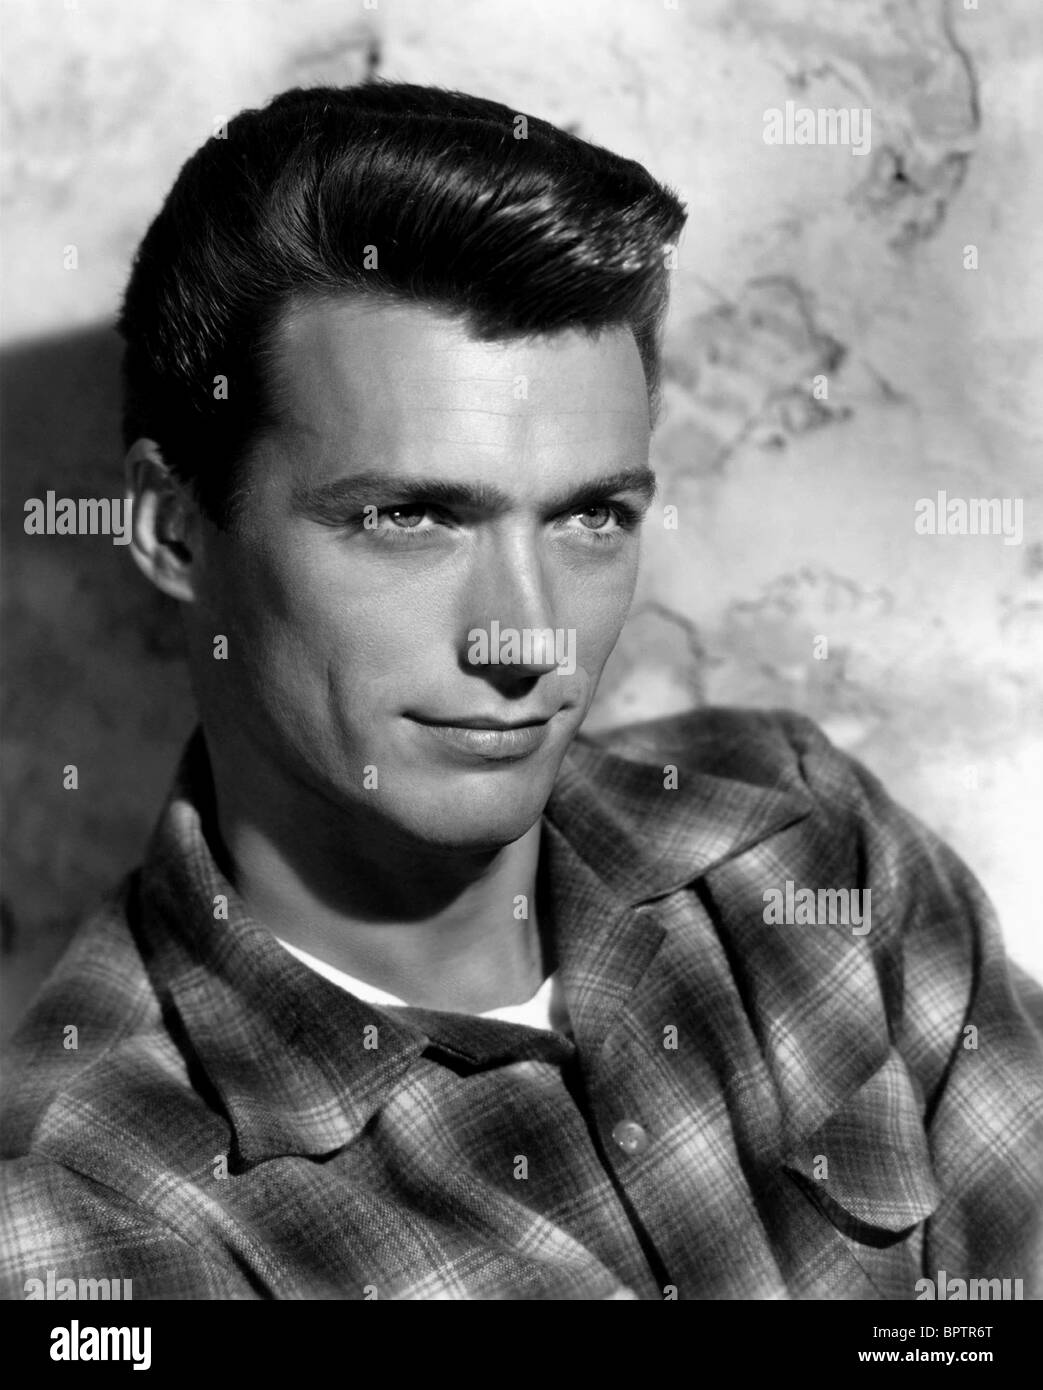 clint eastwood actor 1956 stock photo 31277872 alamy